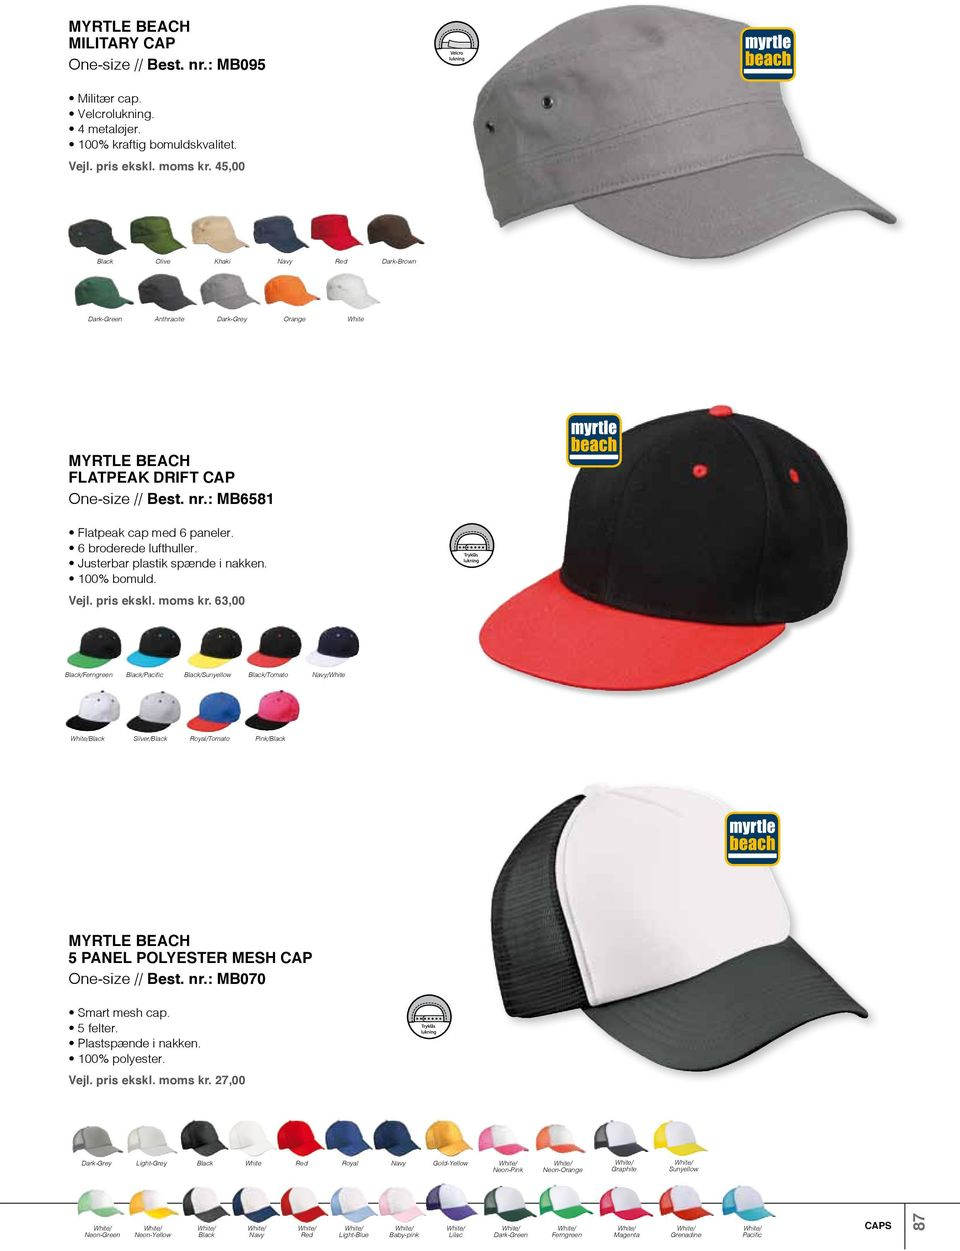 Vejl. pris ekskl. moms kr. 63,00 /Ferngreen /Pacific /Sunyellow /Tomato / Silver/ Royal/Tomato Pink/ 5 Panel Polyester Mesh Cap One-size // Best. nr.: MB070 Smart mesh cap. 5 felter.